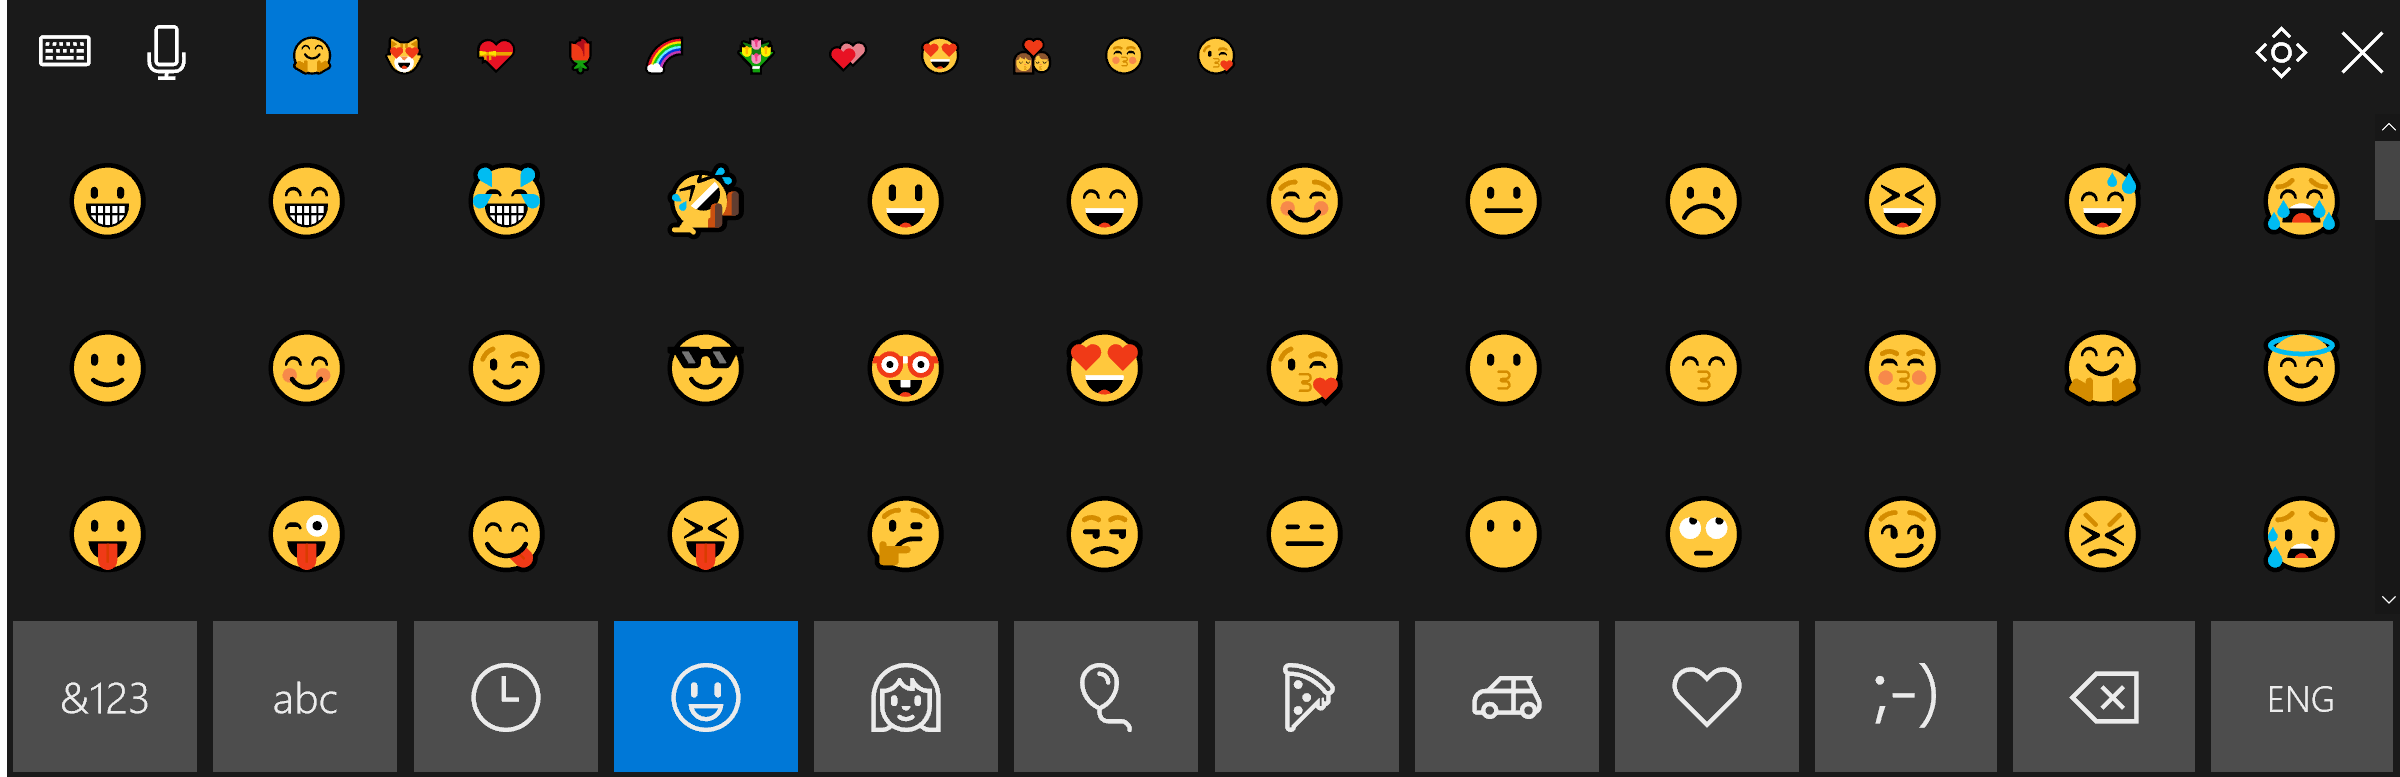 Improved touch keyboard with emojis